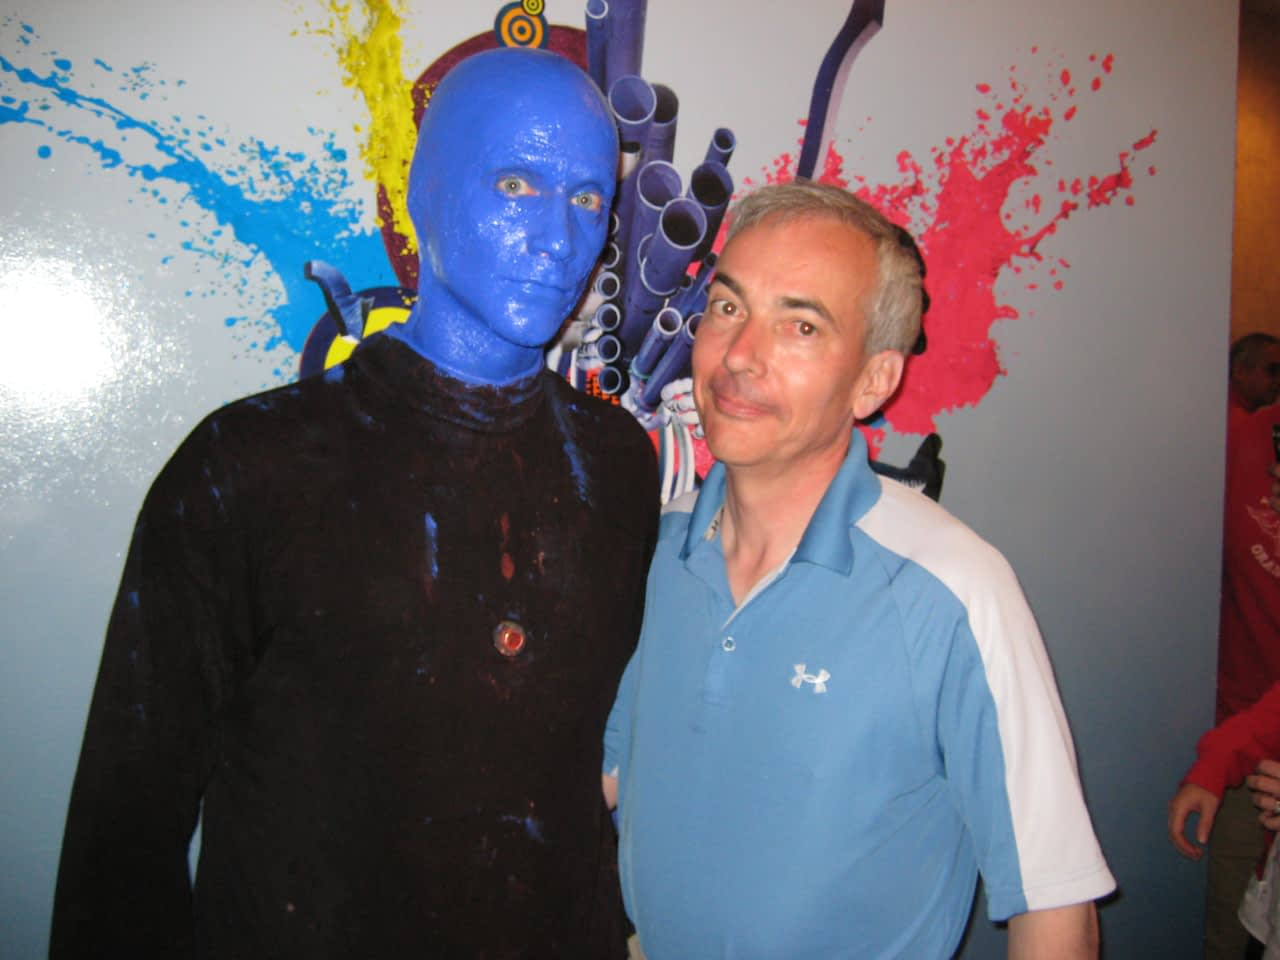 Dr. Warner + Blue Man